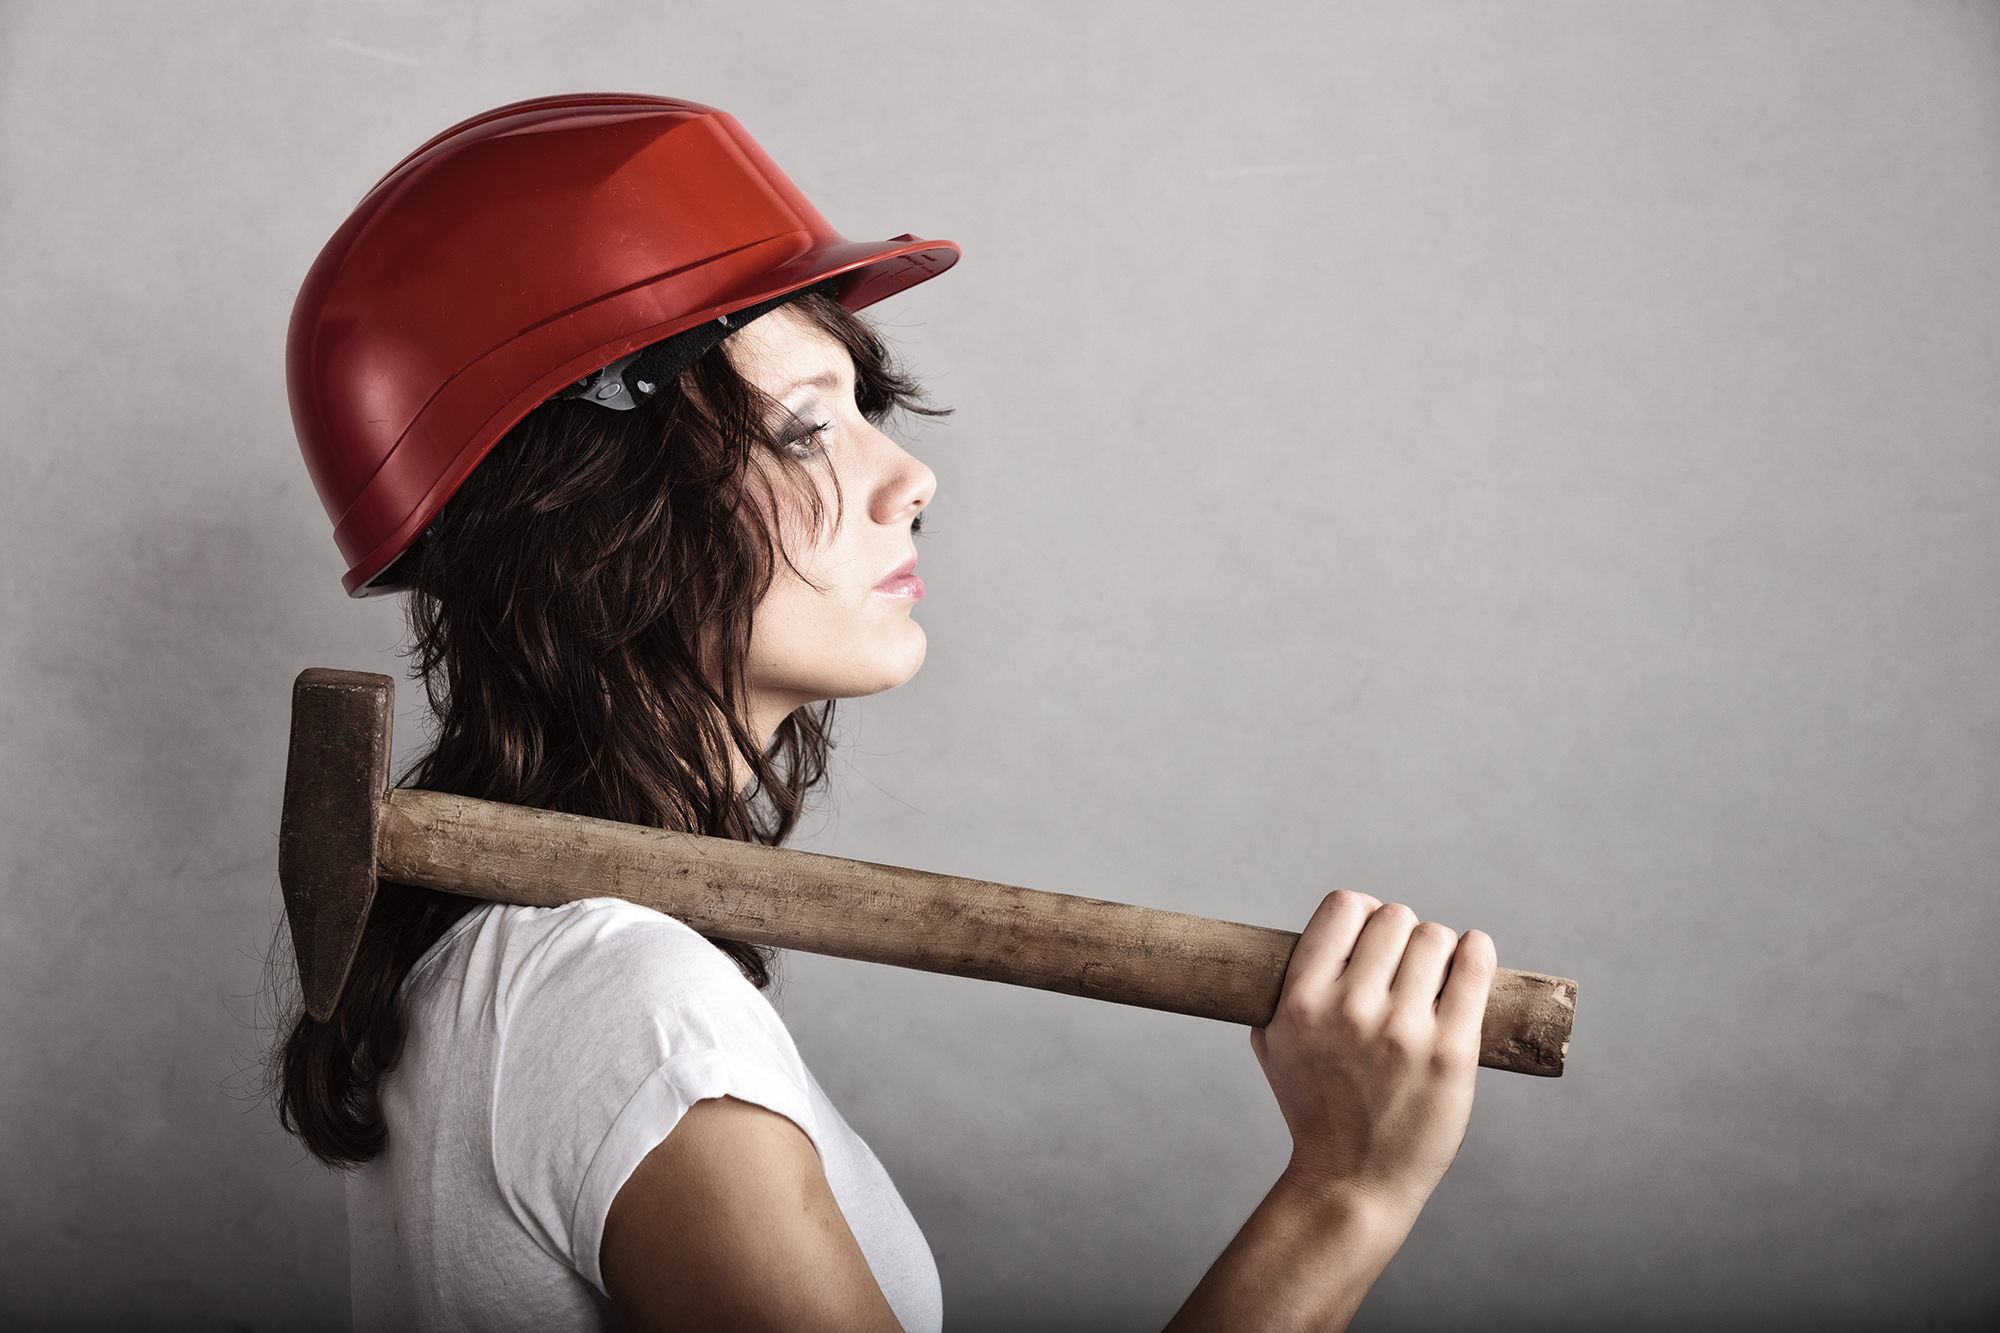 Woman with hard hat and hammer